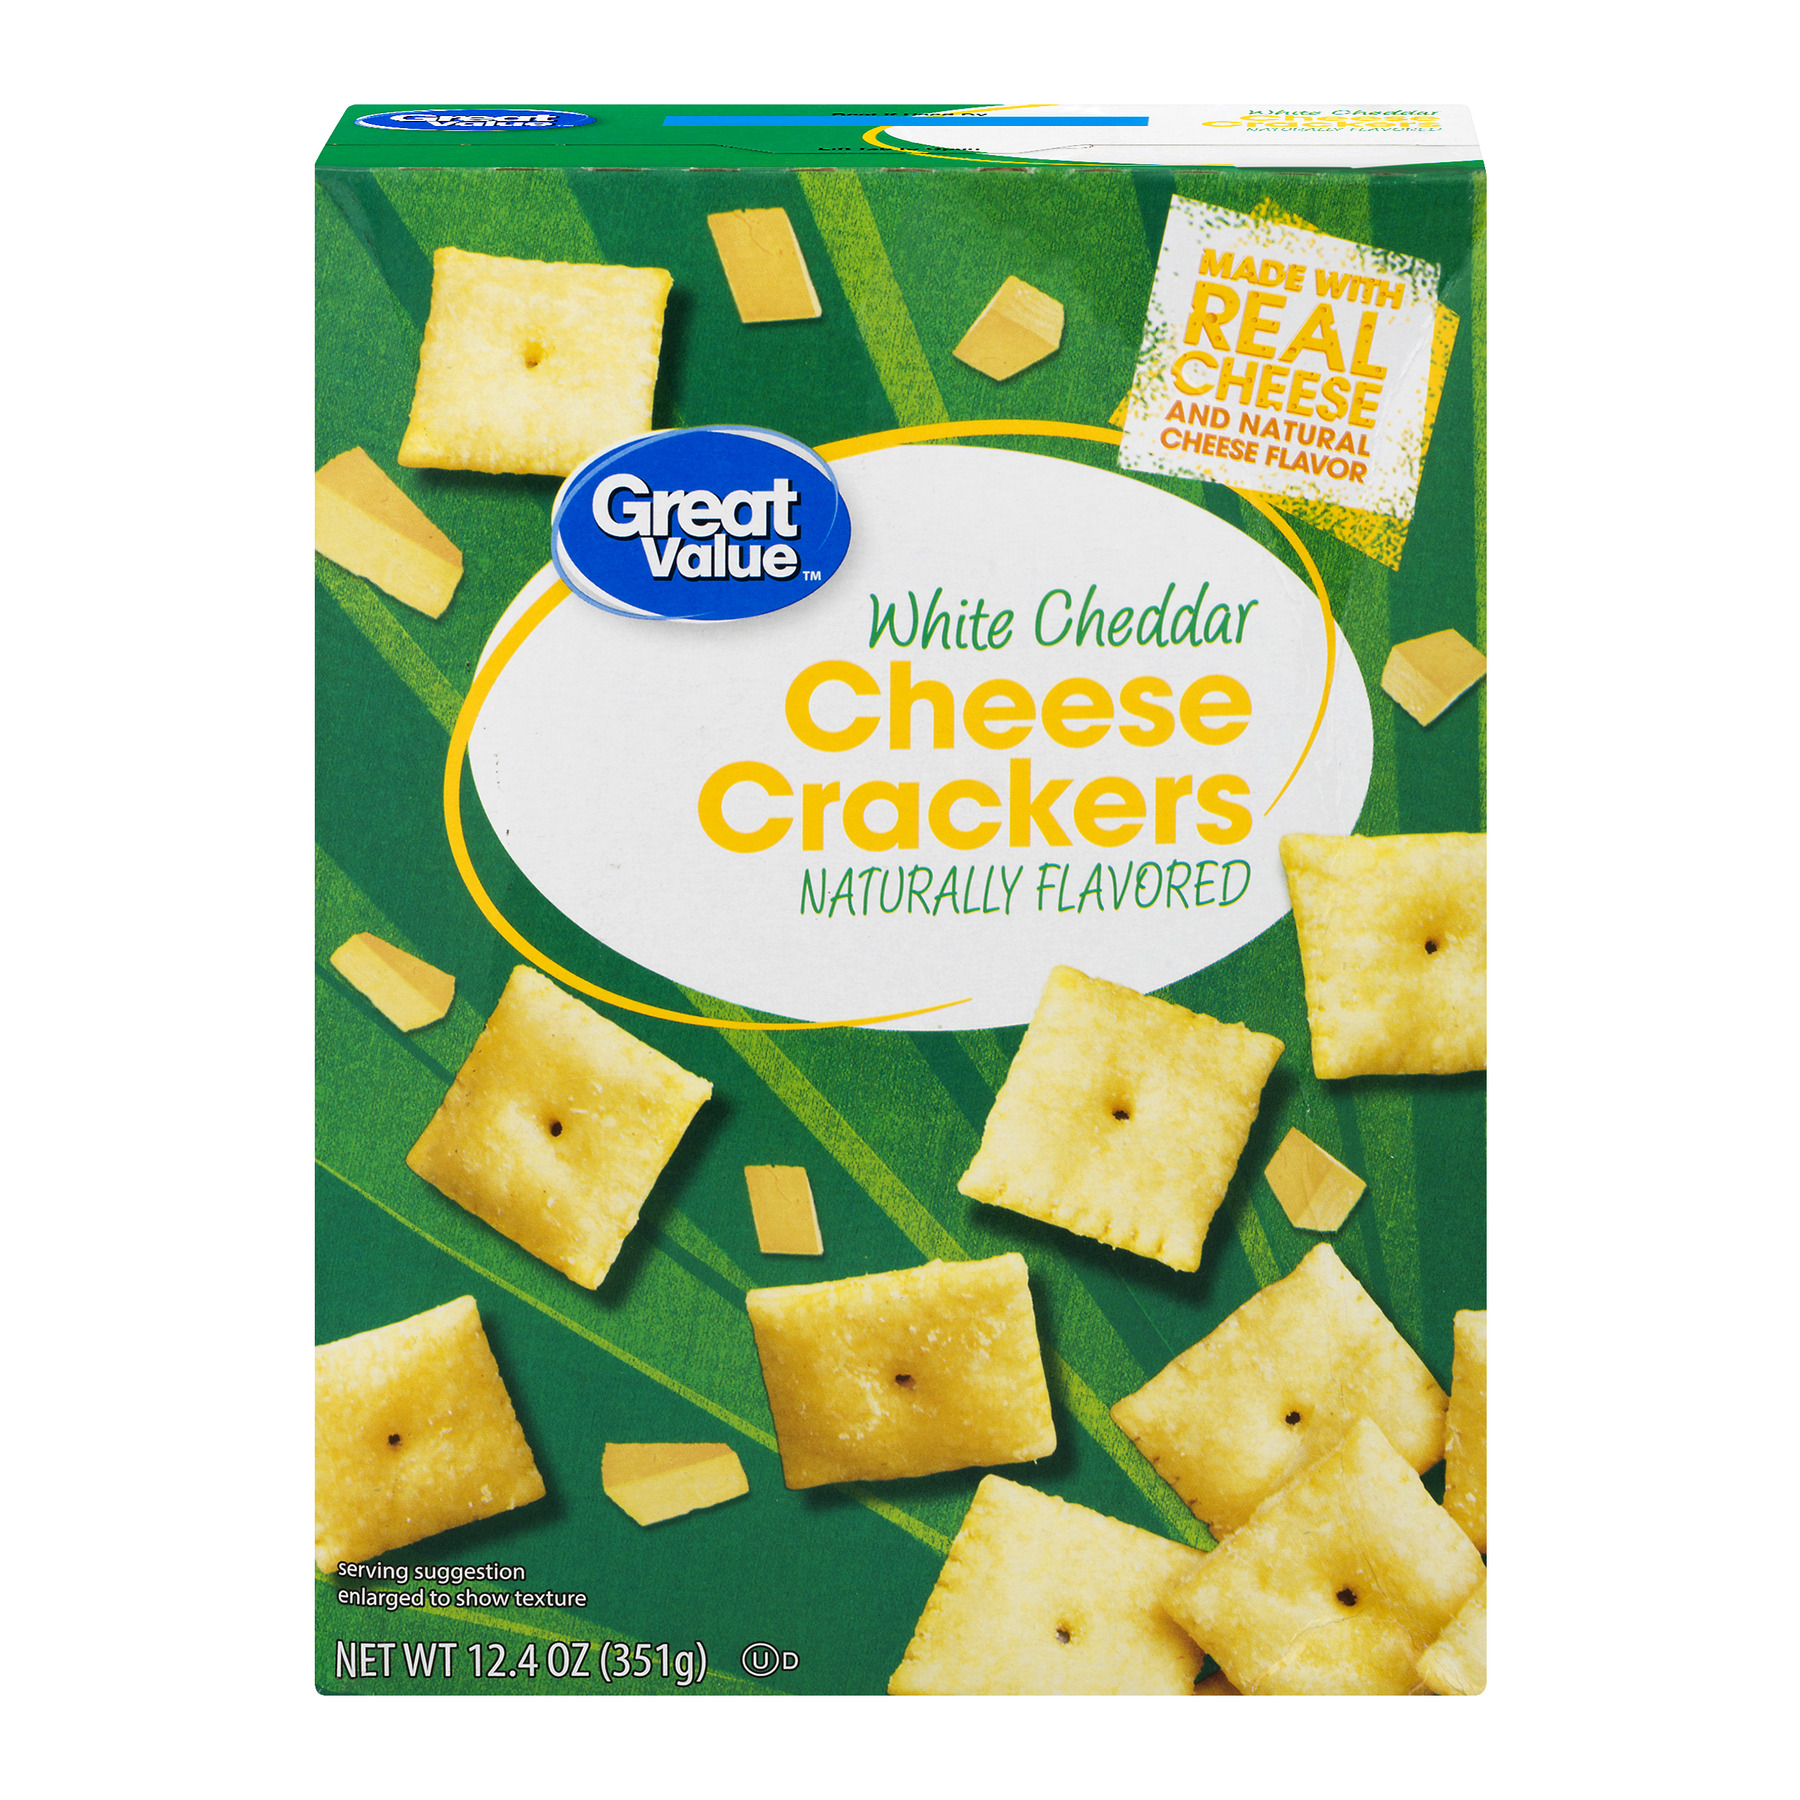 Great Value White Cheddar Cheese Crackers, 12.4 oz